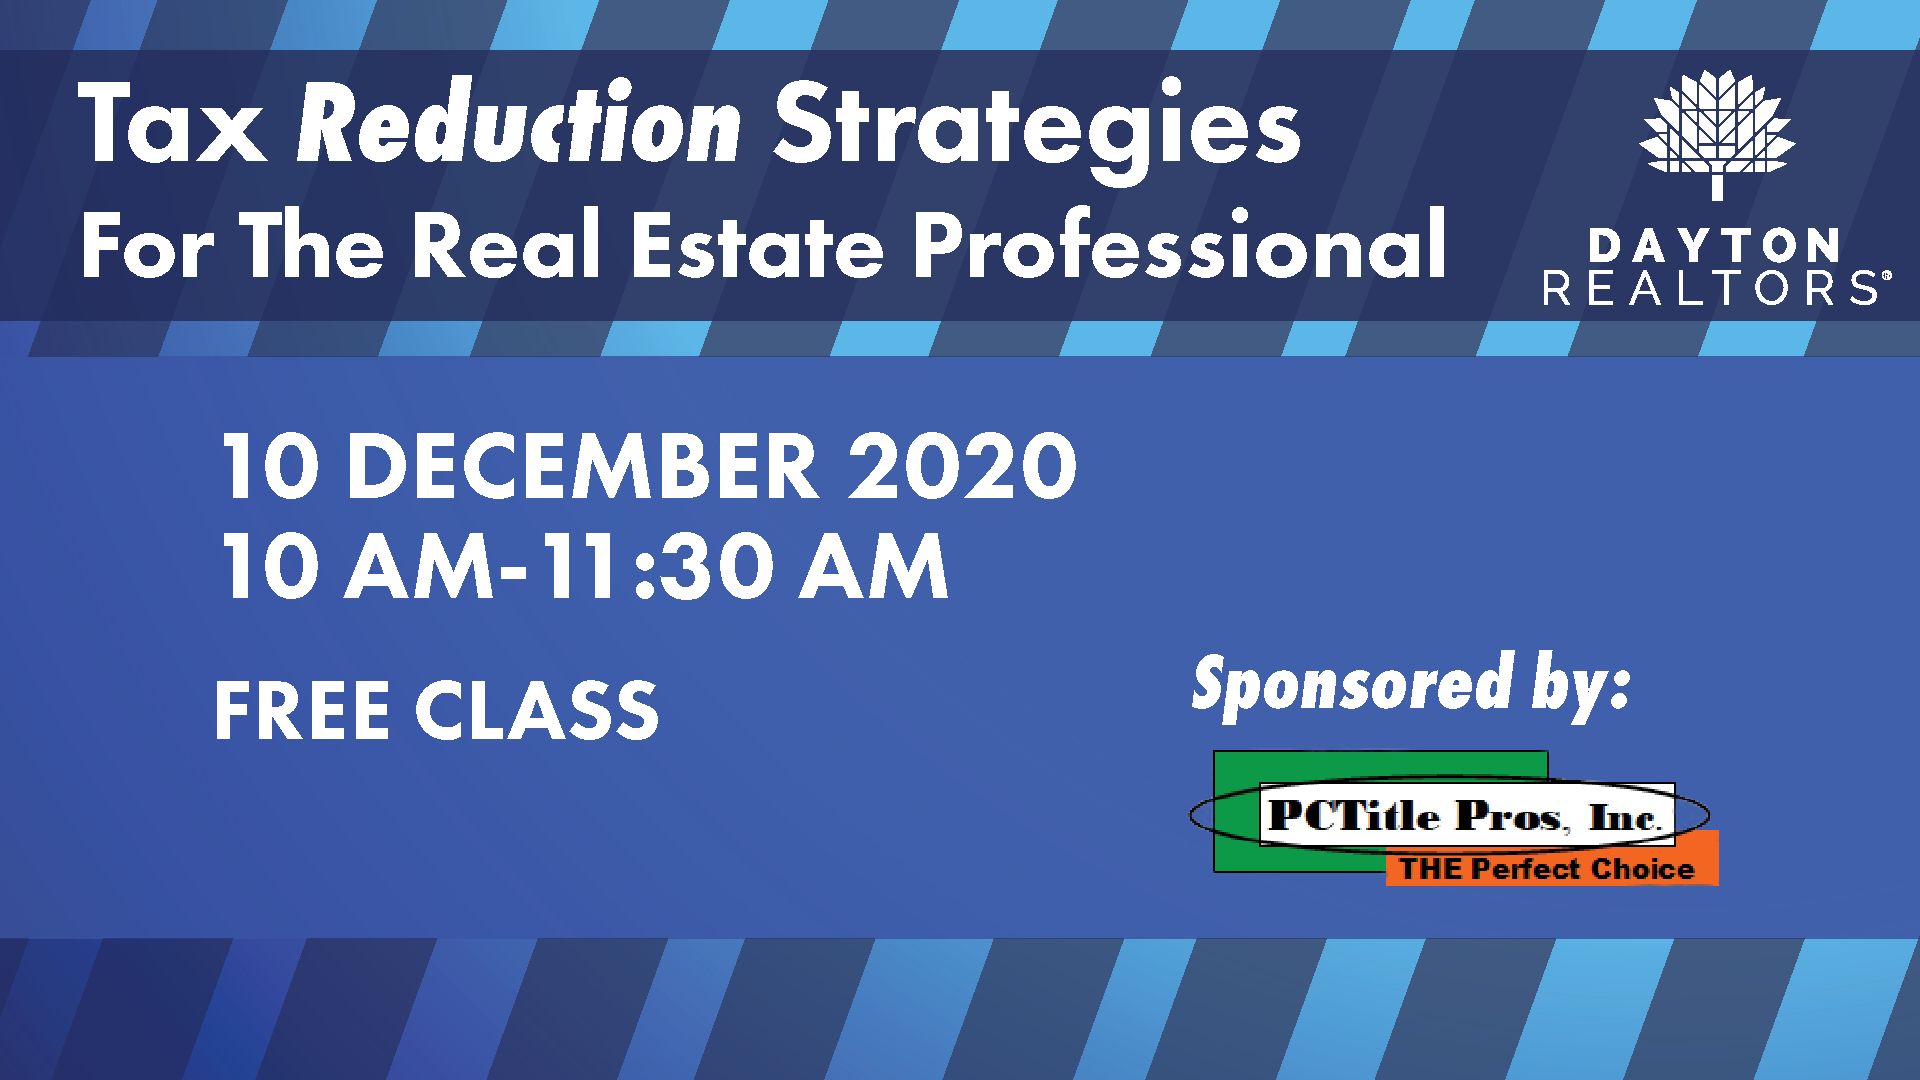 Tax Reduction Strategies, Dec. 10